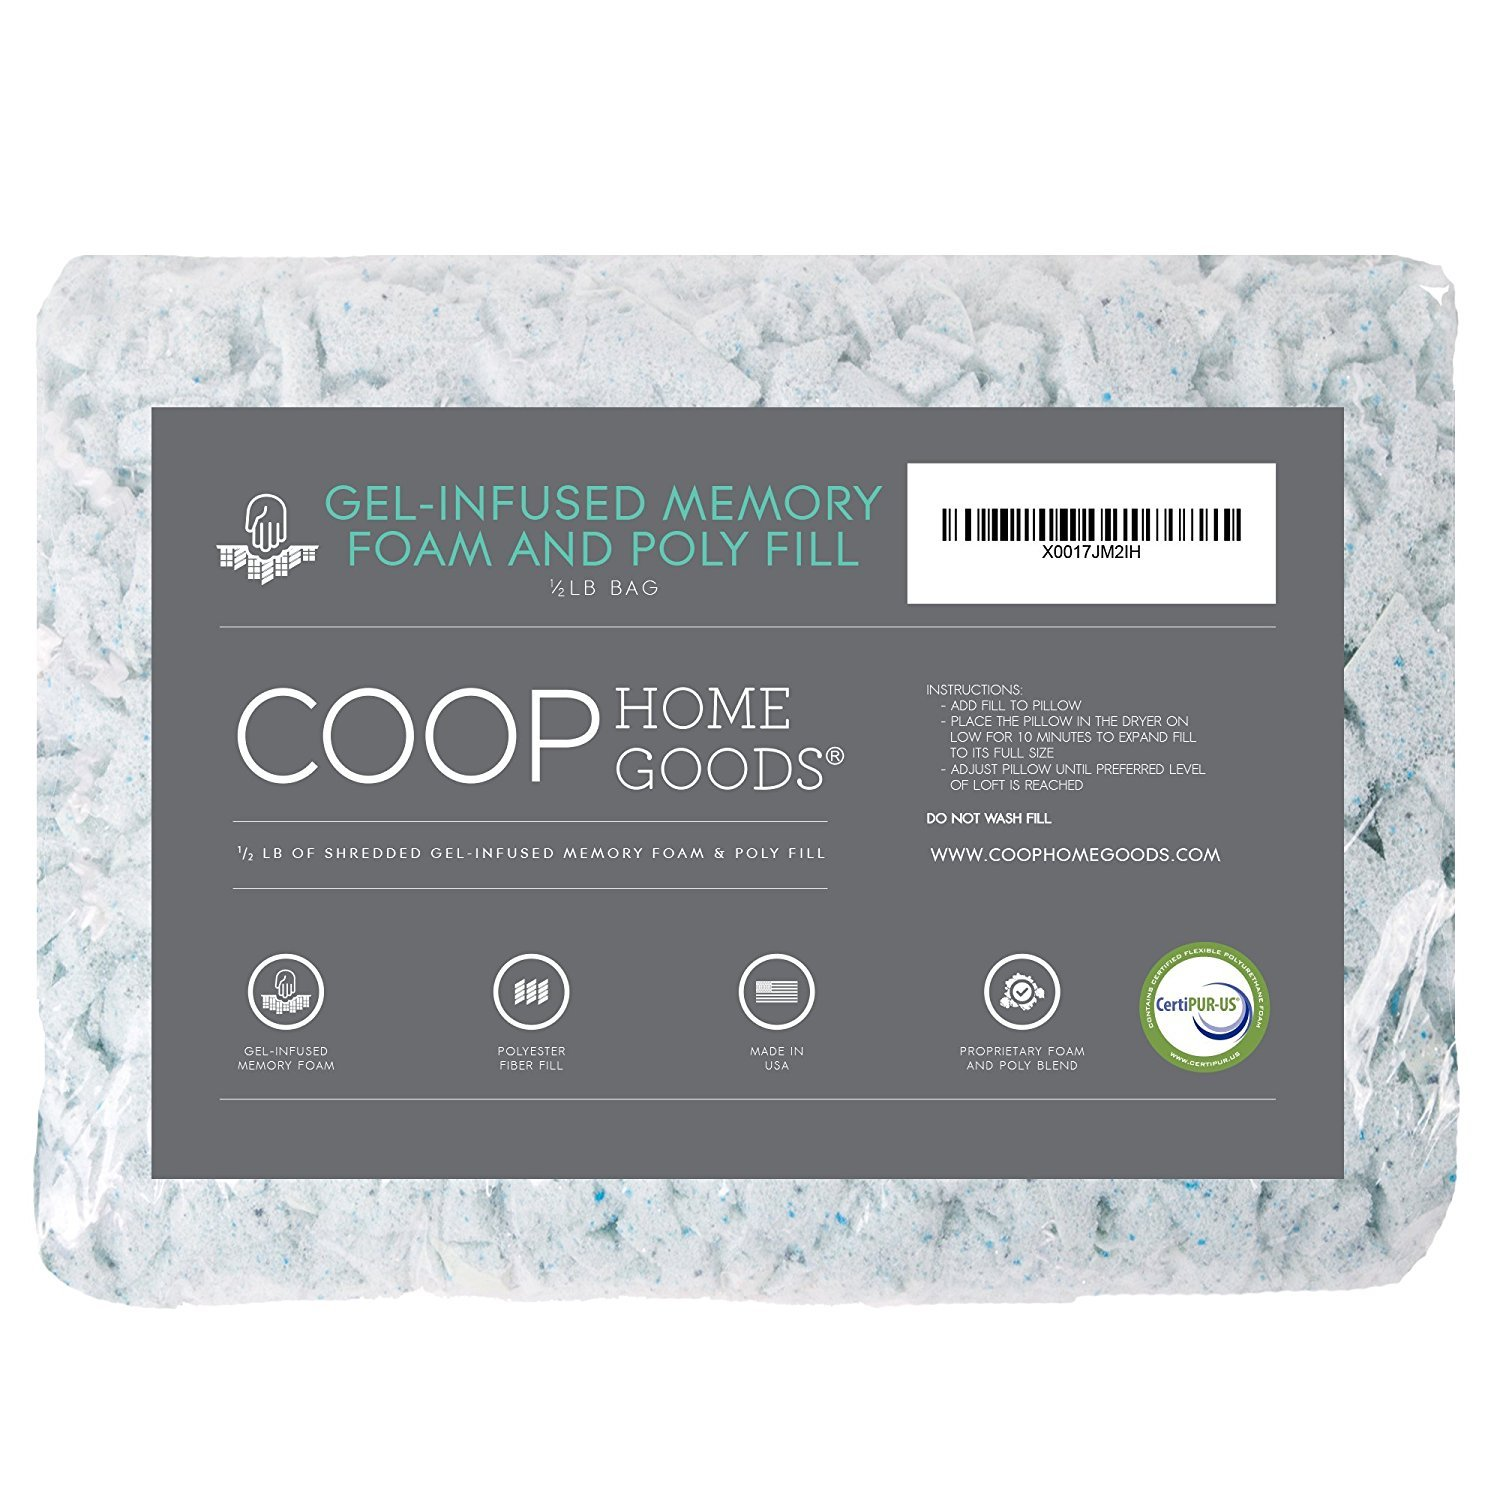 Coop Home Goods - Adjustable Shredded Gel Memory Foam and Poly Fiber Fill - 1/2 lb Refill for Eden Pillow COMIN18JU056110